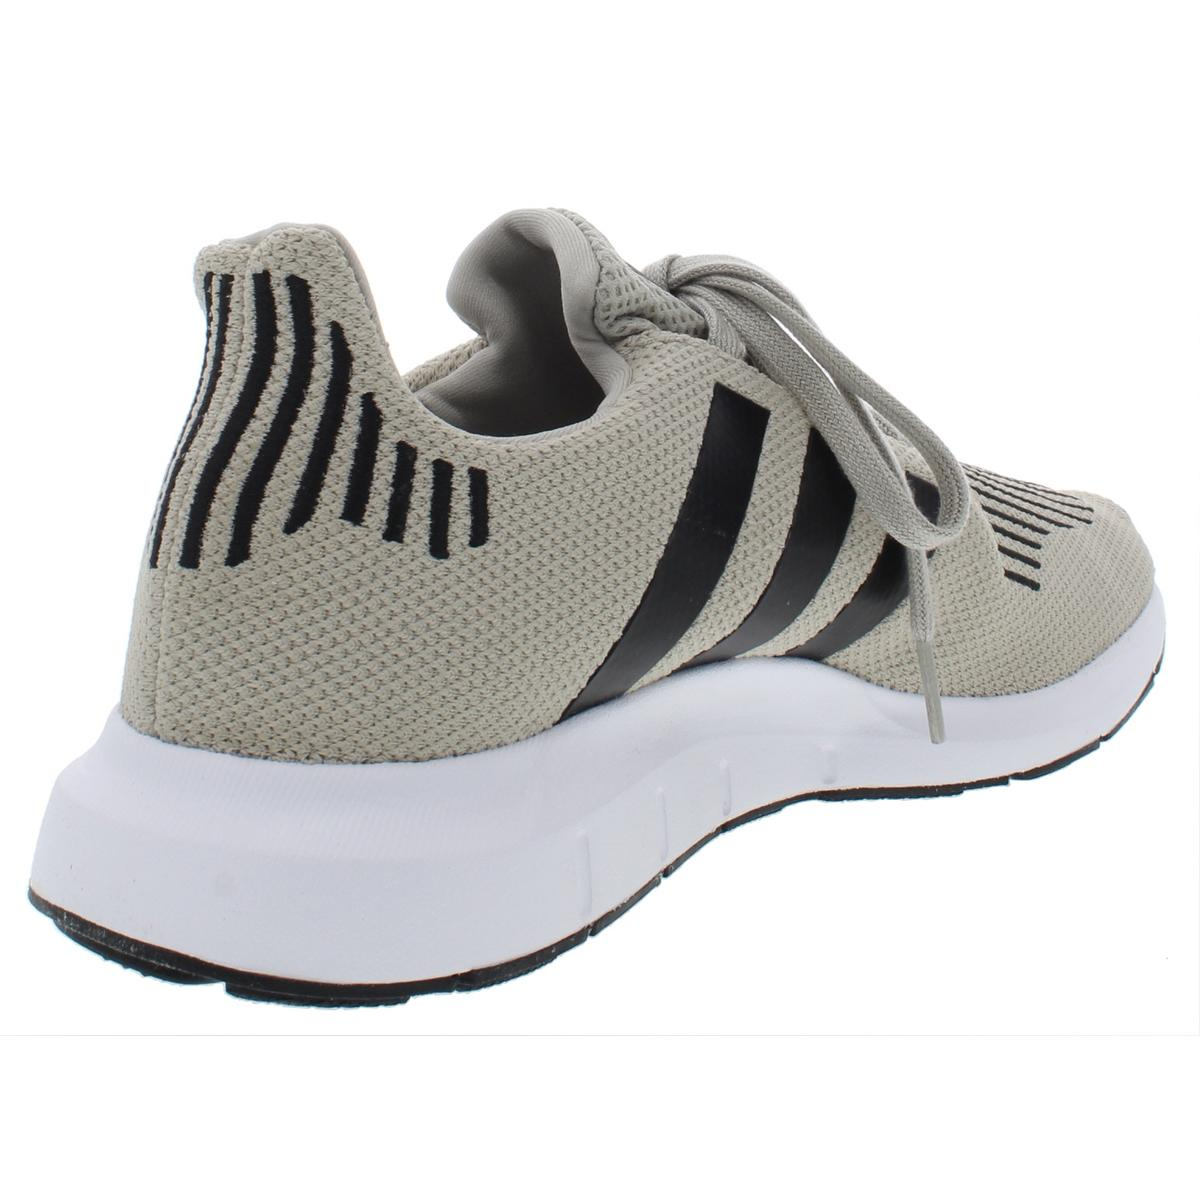 9e4f230d80842 Details about adidas Originals Mens Swift Run Knit Running Athletic Shoes  Sneakers BHFO 4404